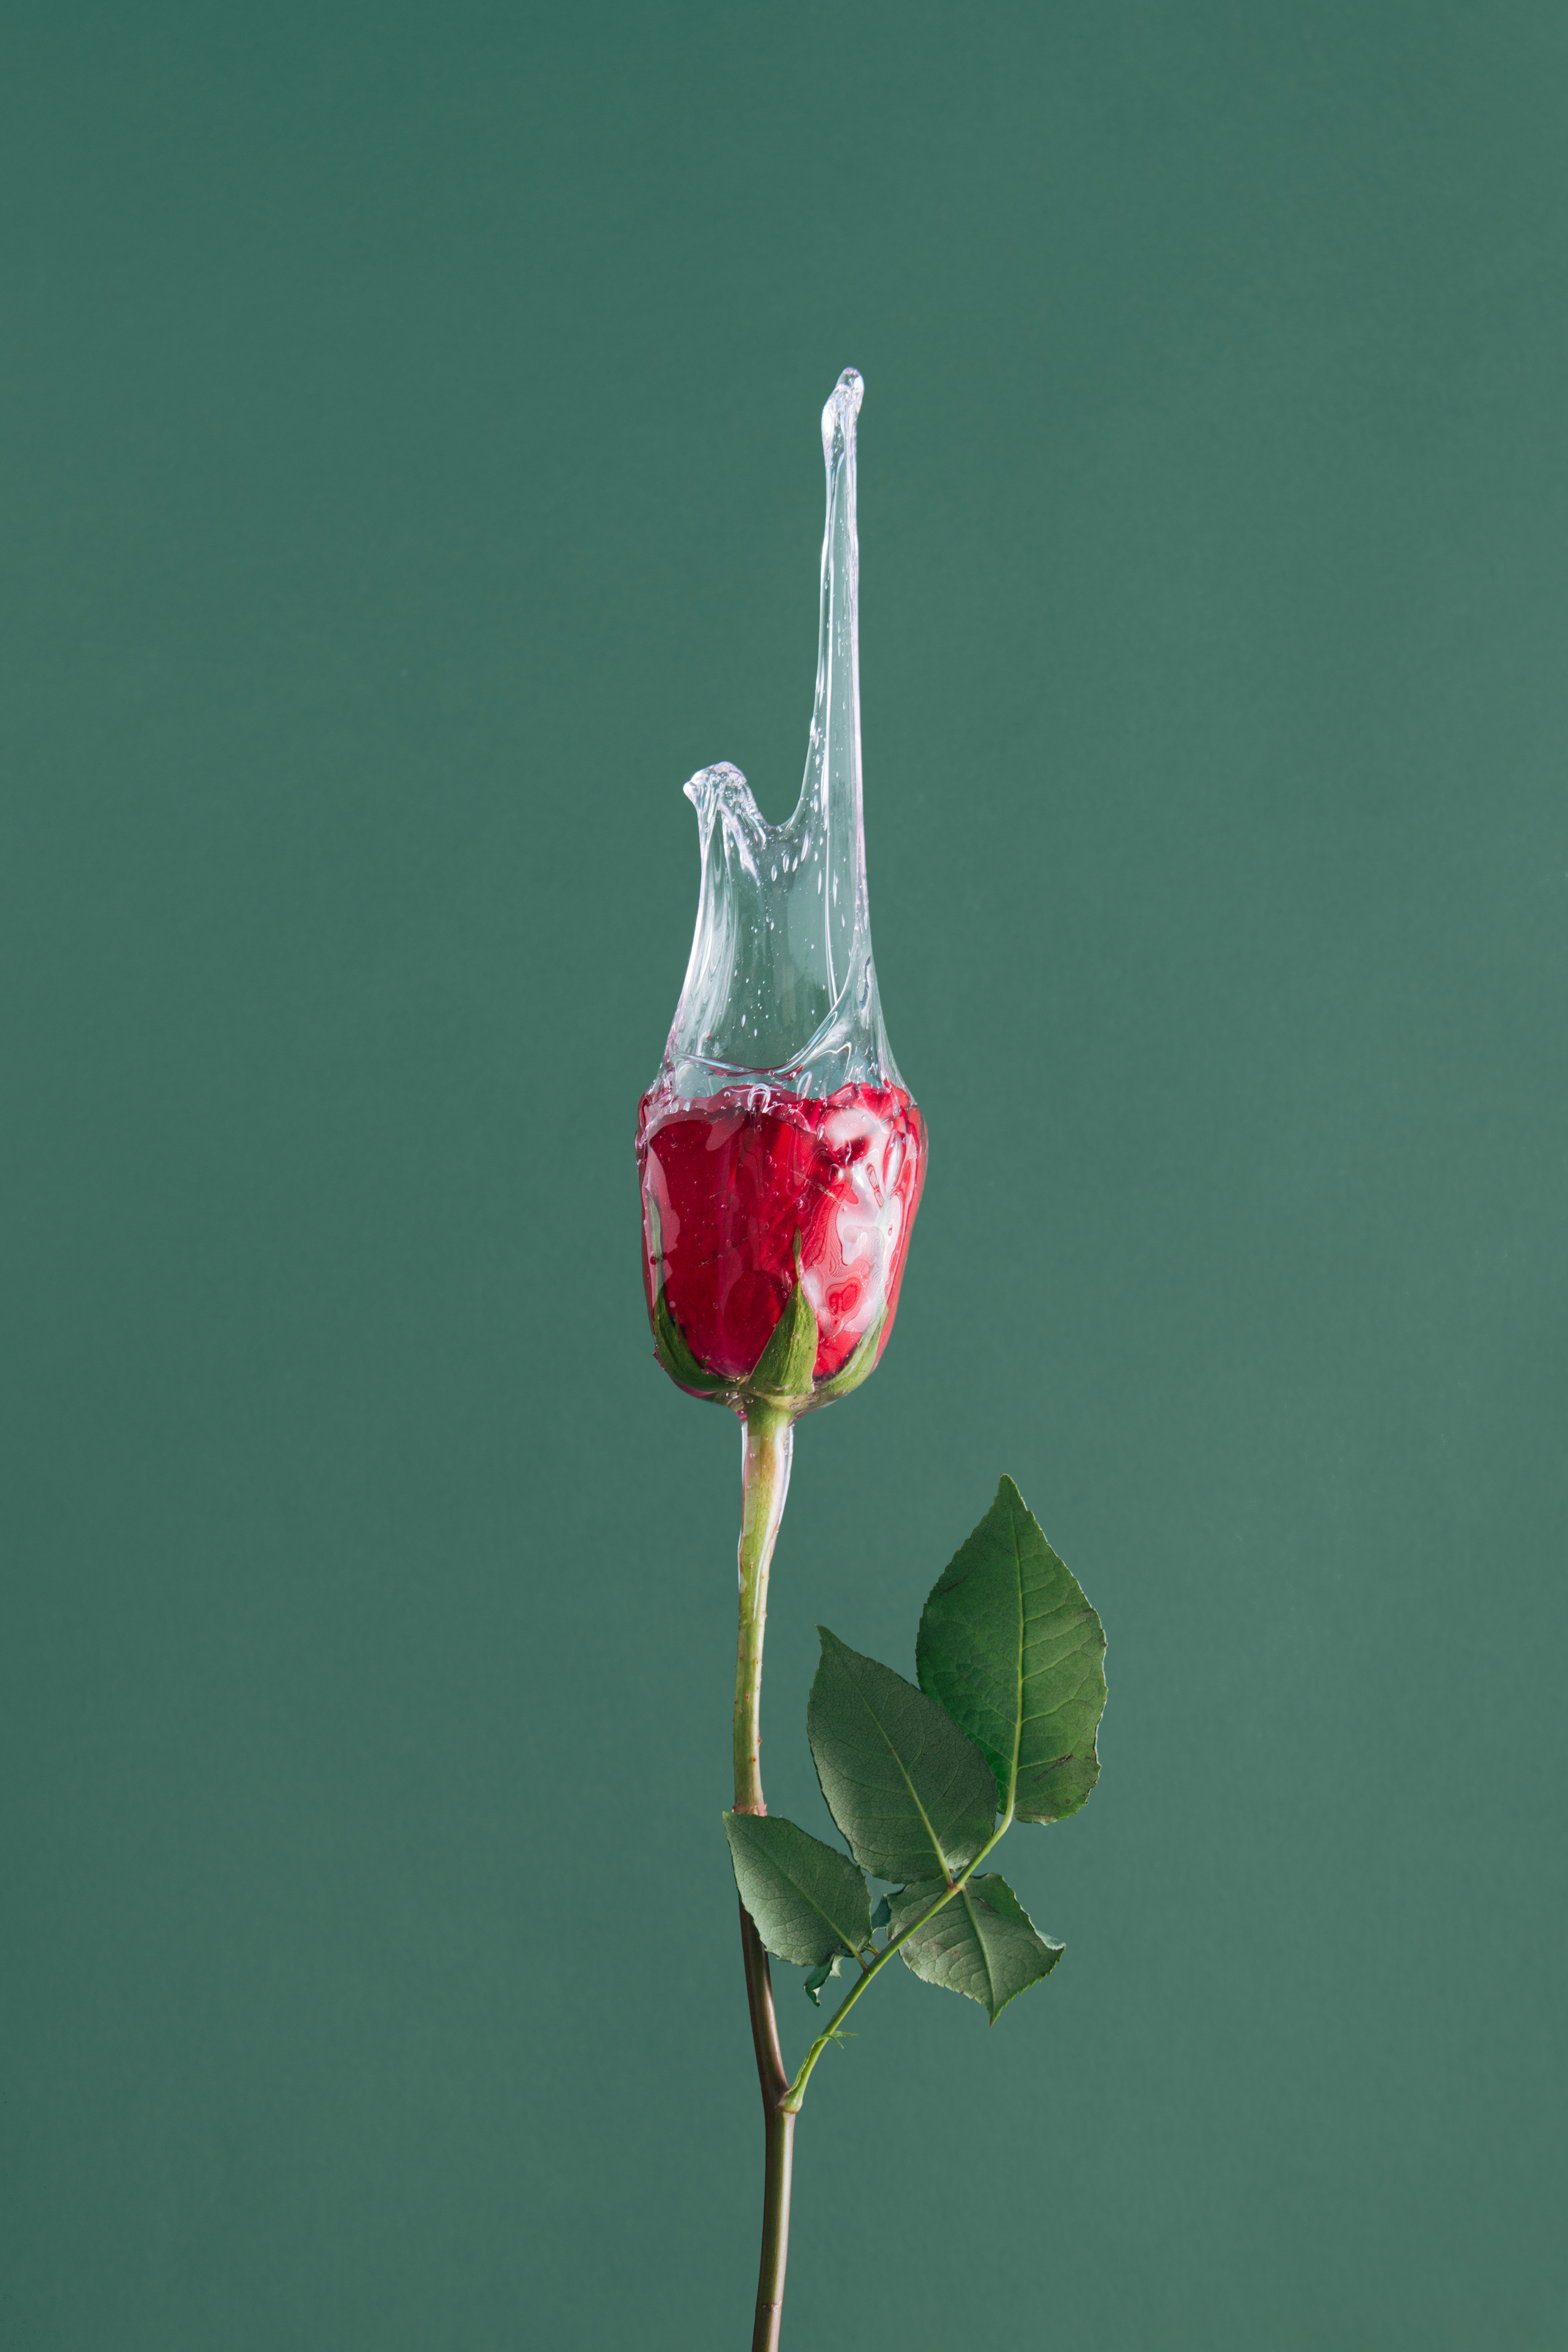 Red rose flower with slime against green background